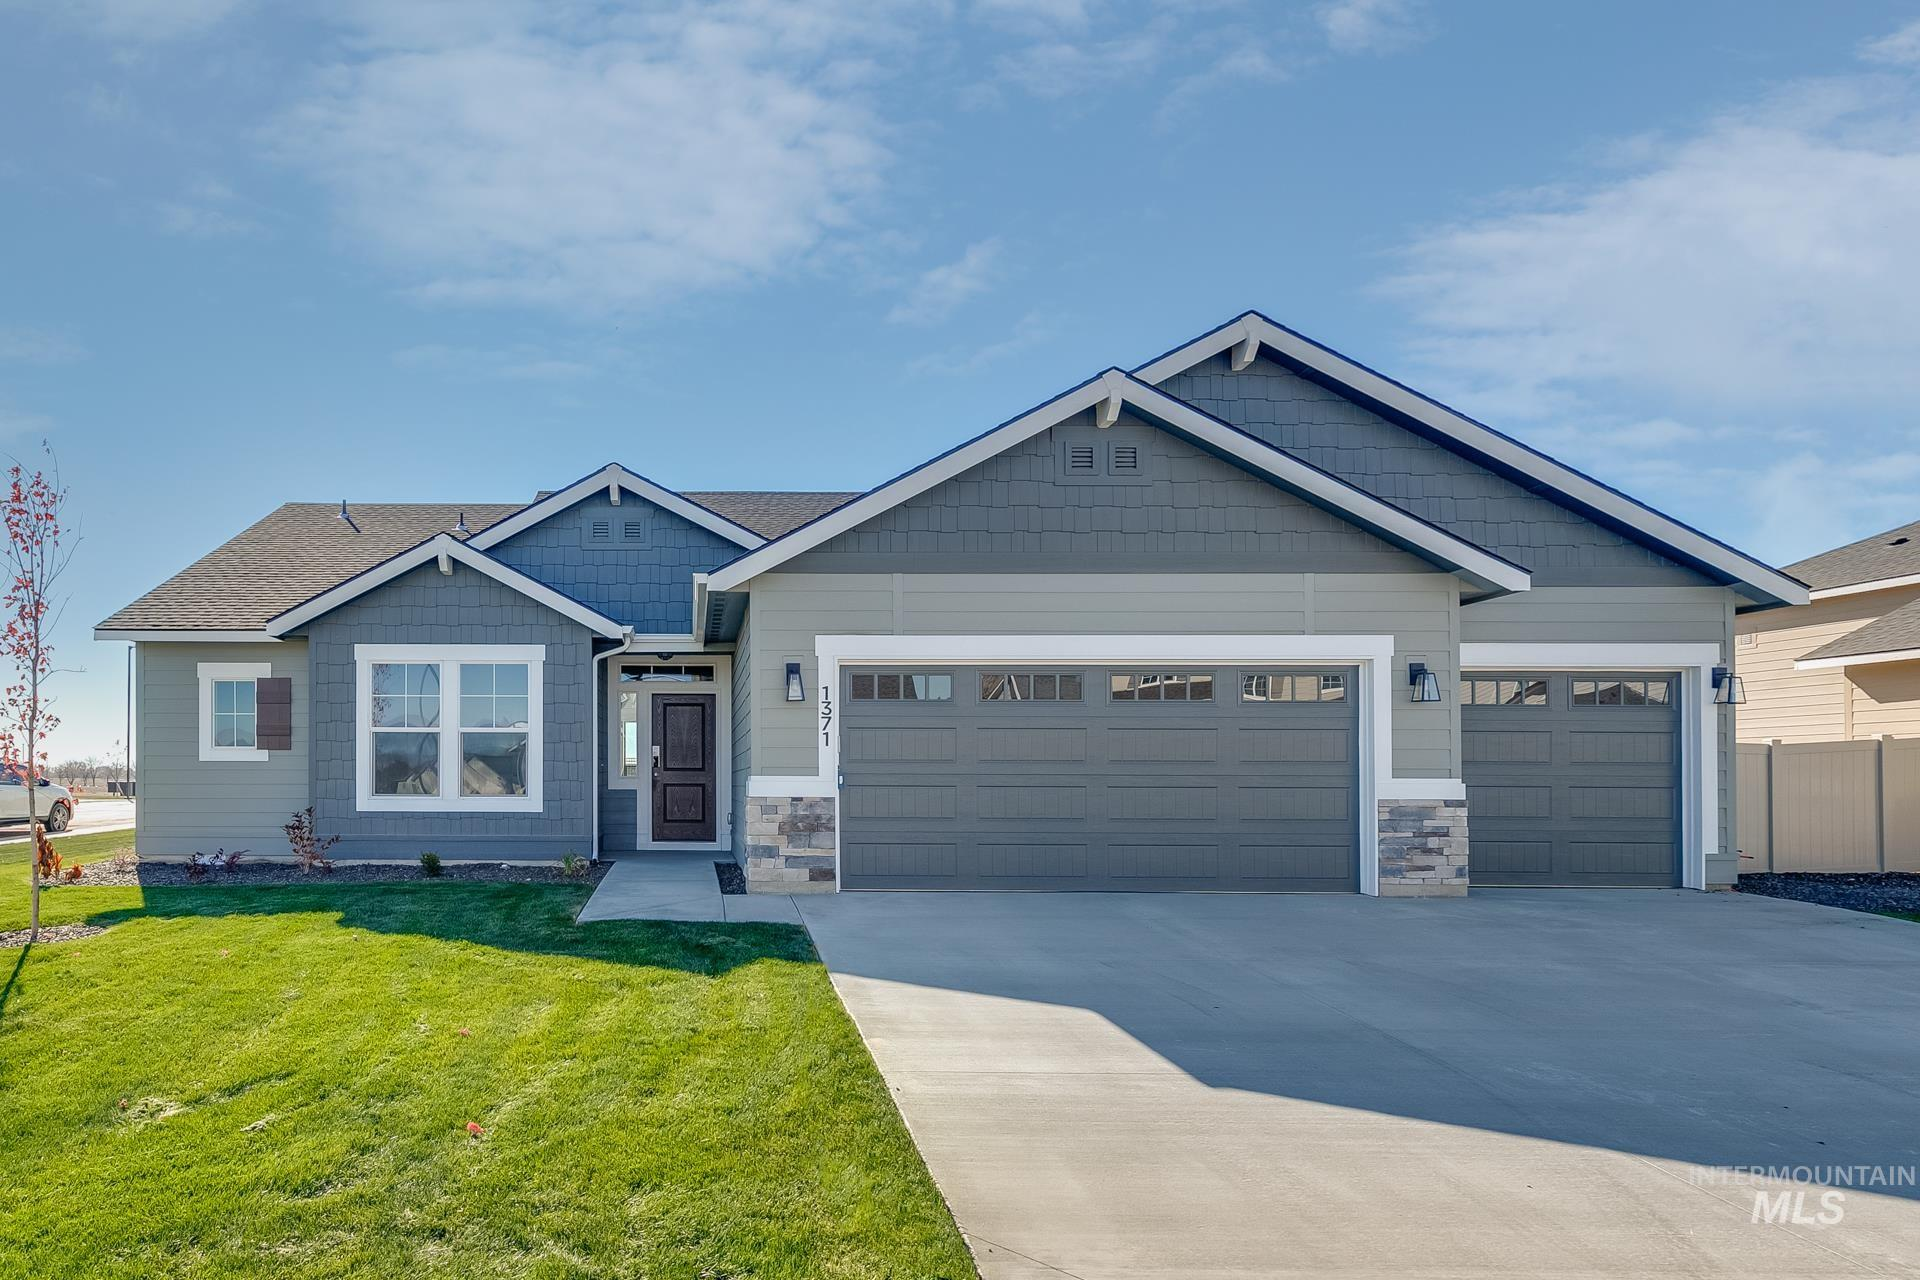 772 White Tail Dr Property Photo - Twin Falls, ID real estate listing